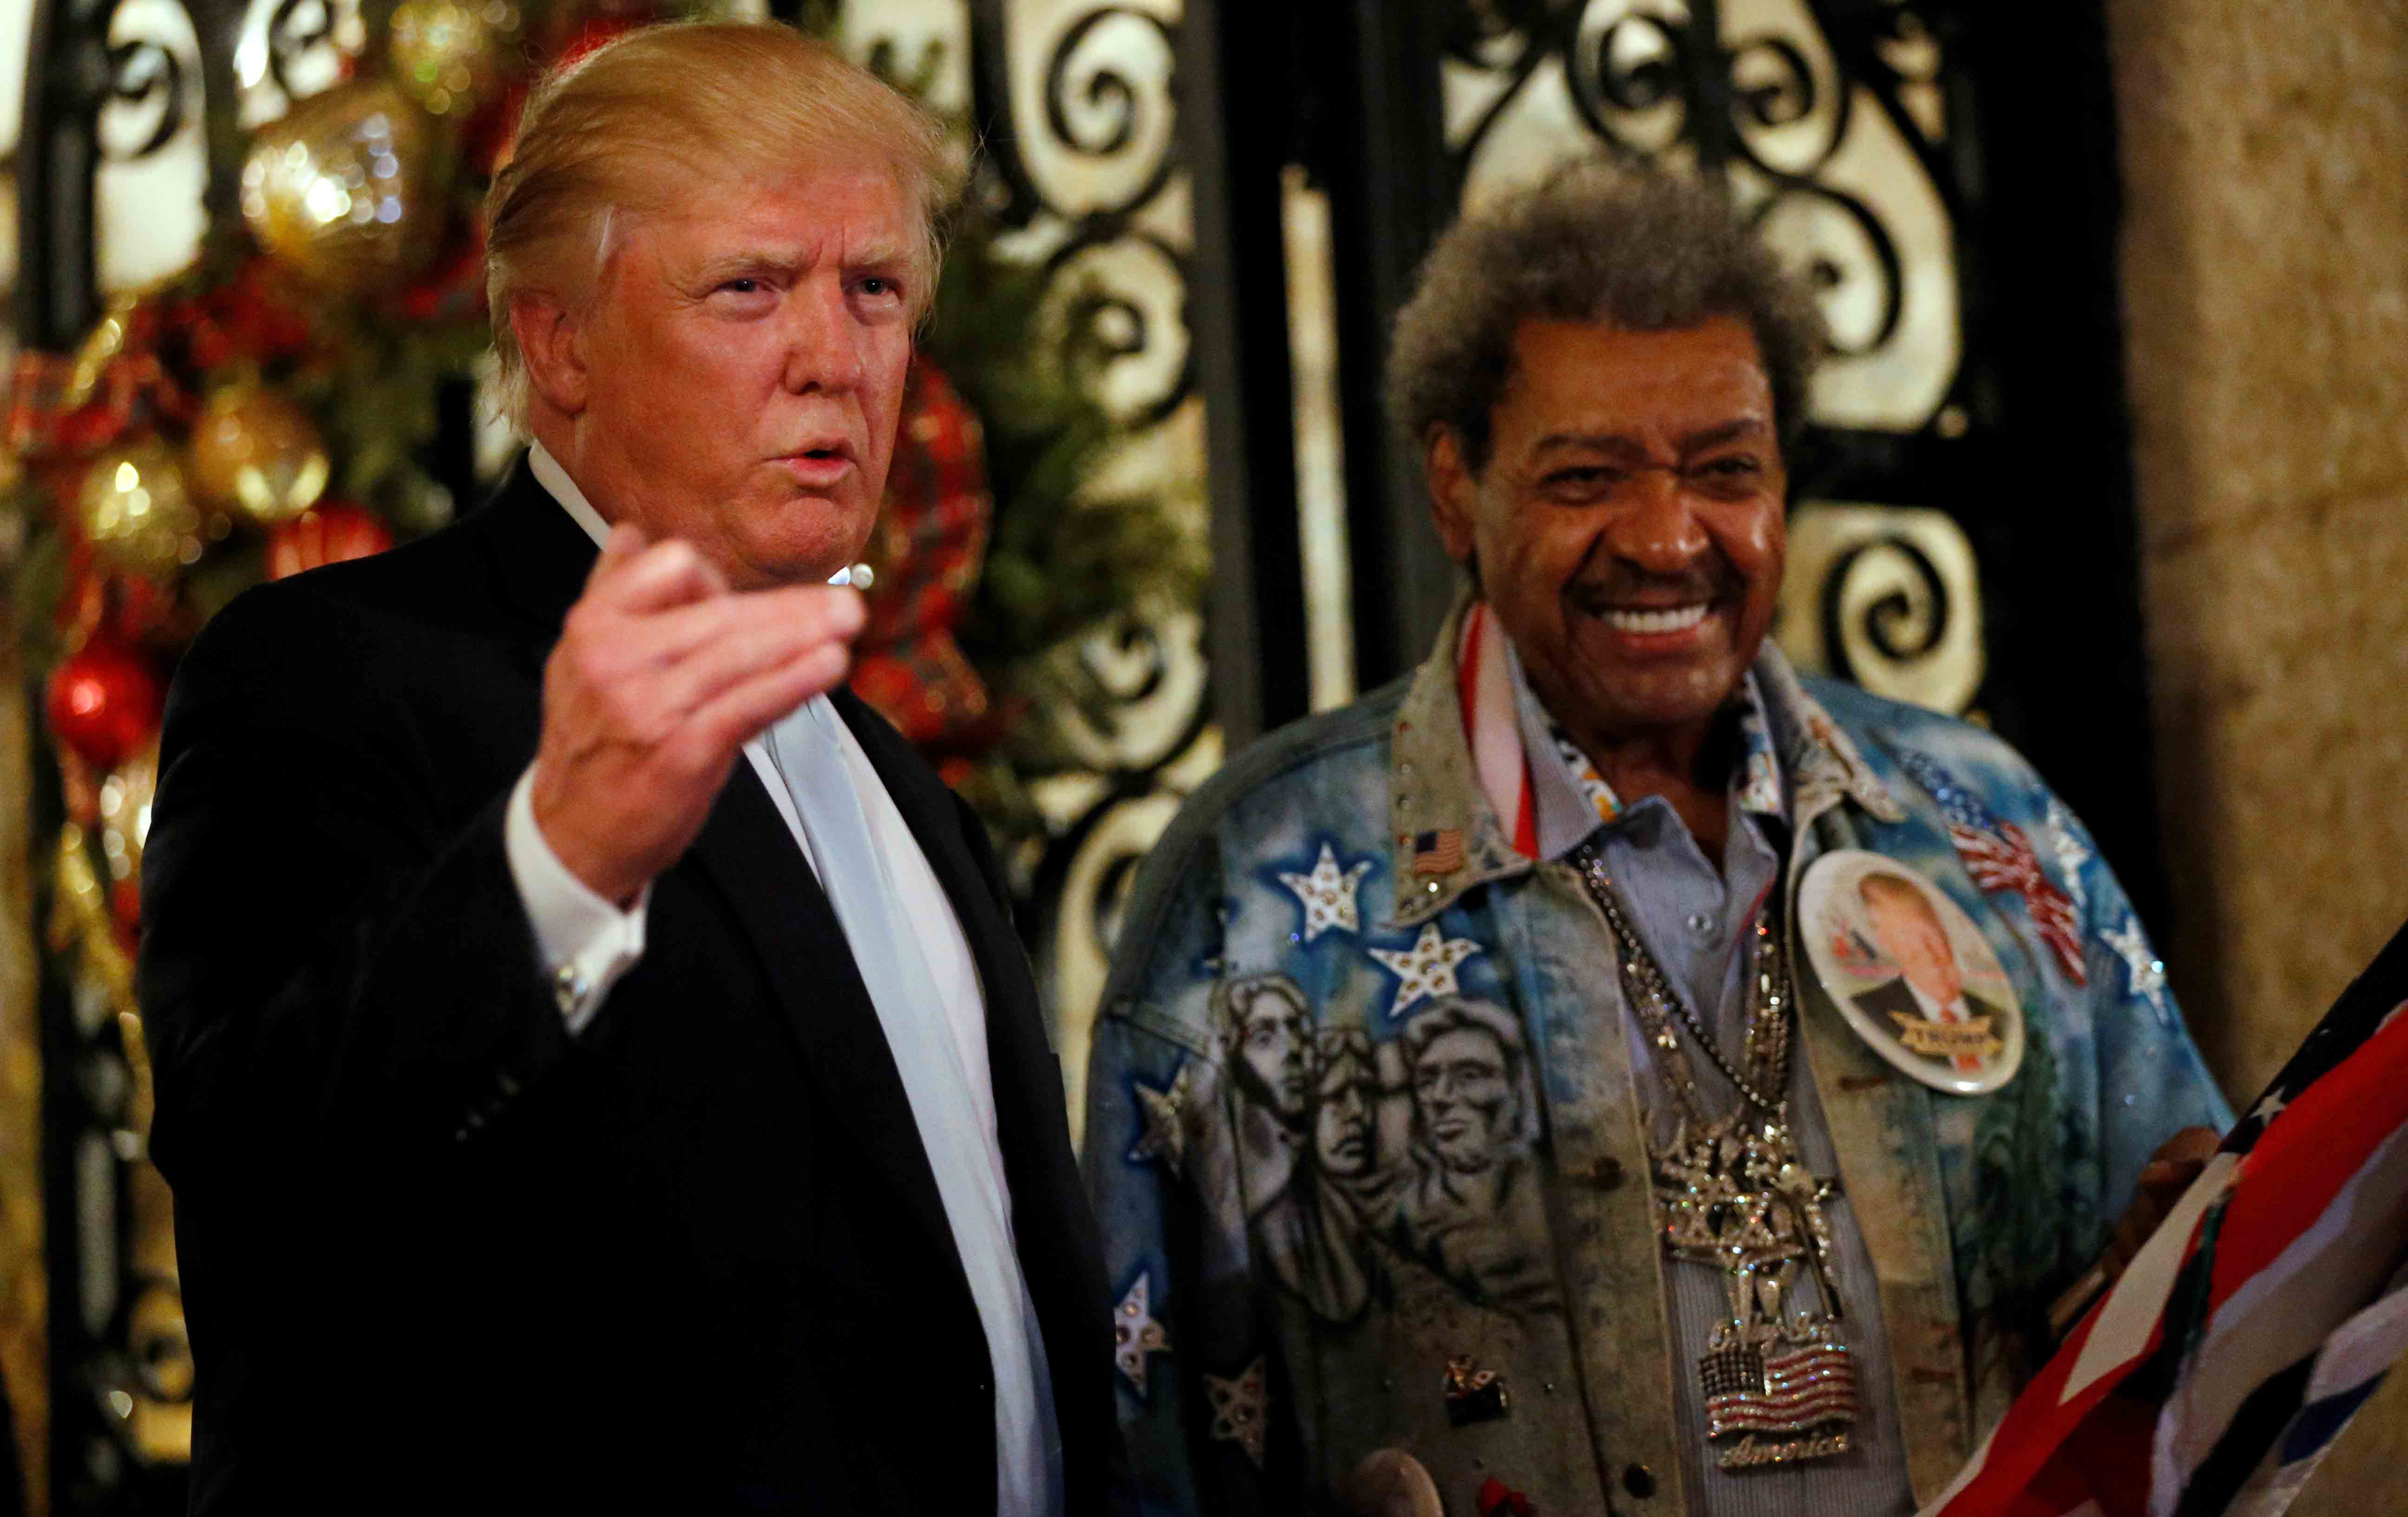 Donald Trump and Don King.